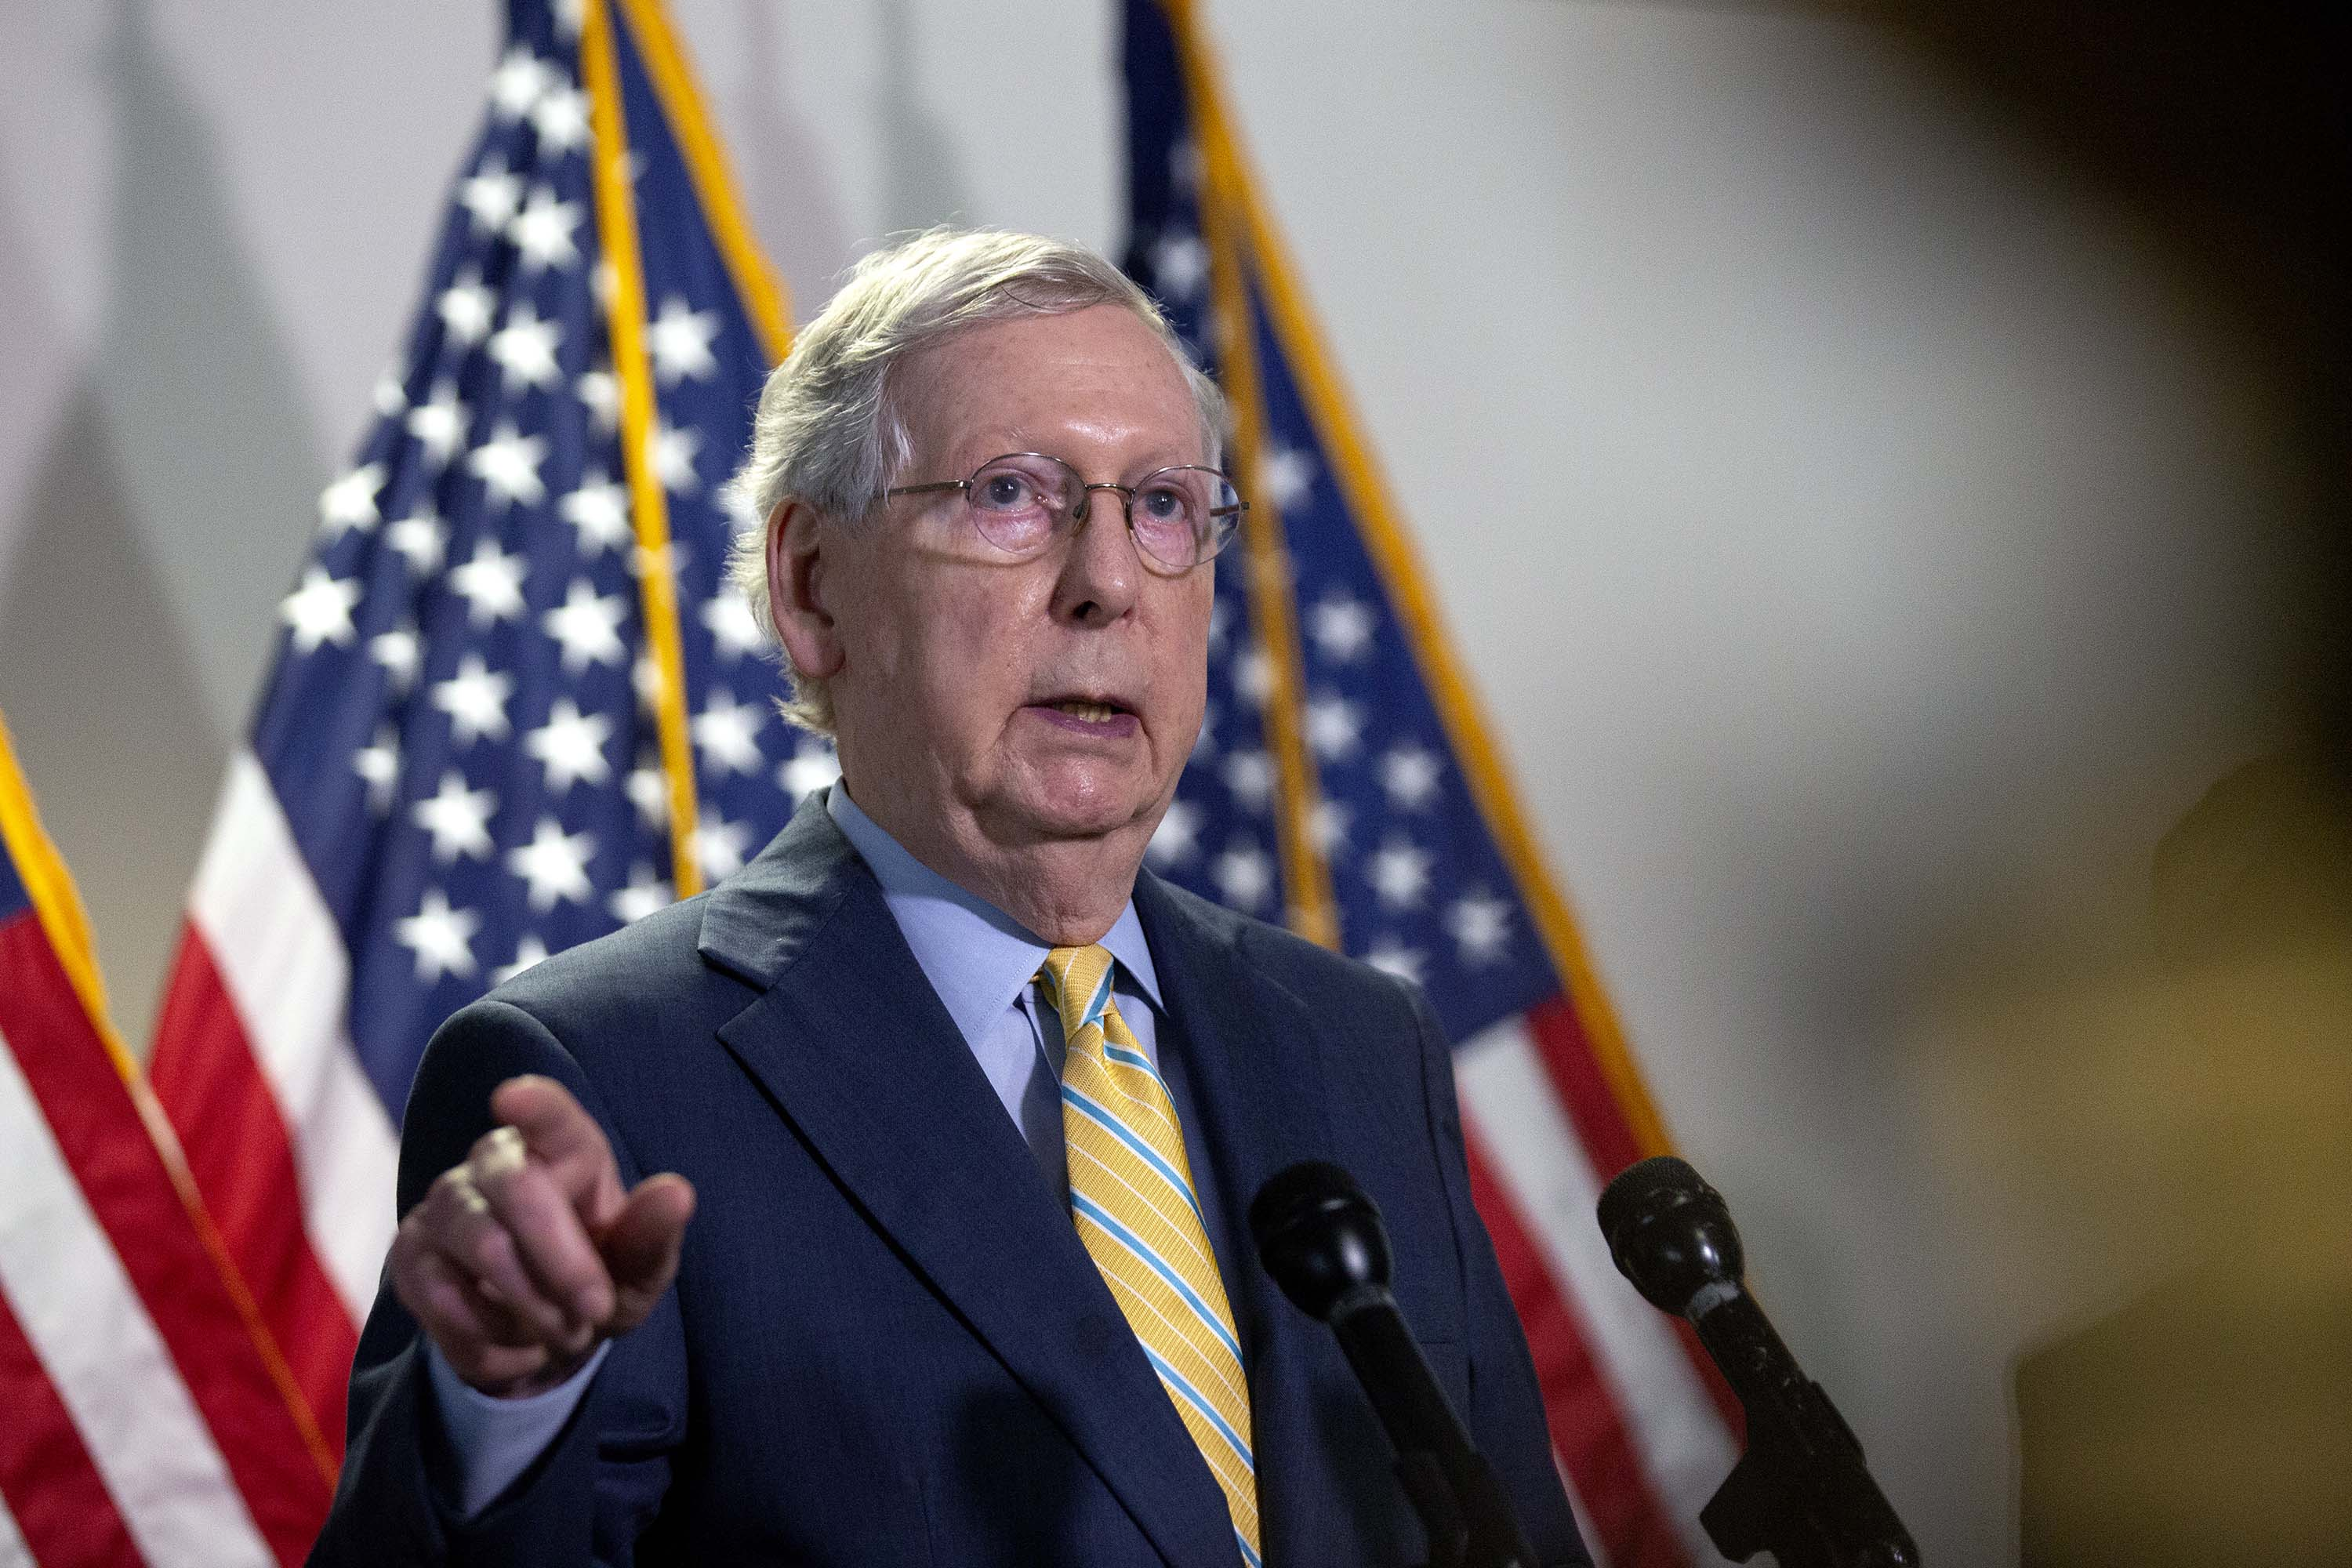 Pro sports players associations come out against key McConnell stimulus priority